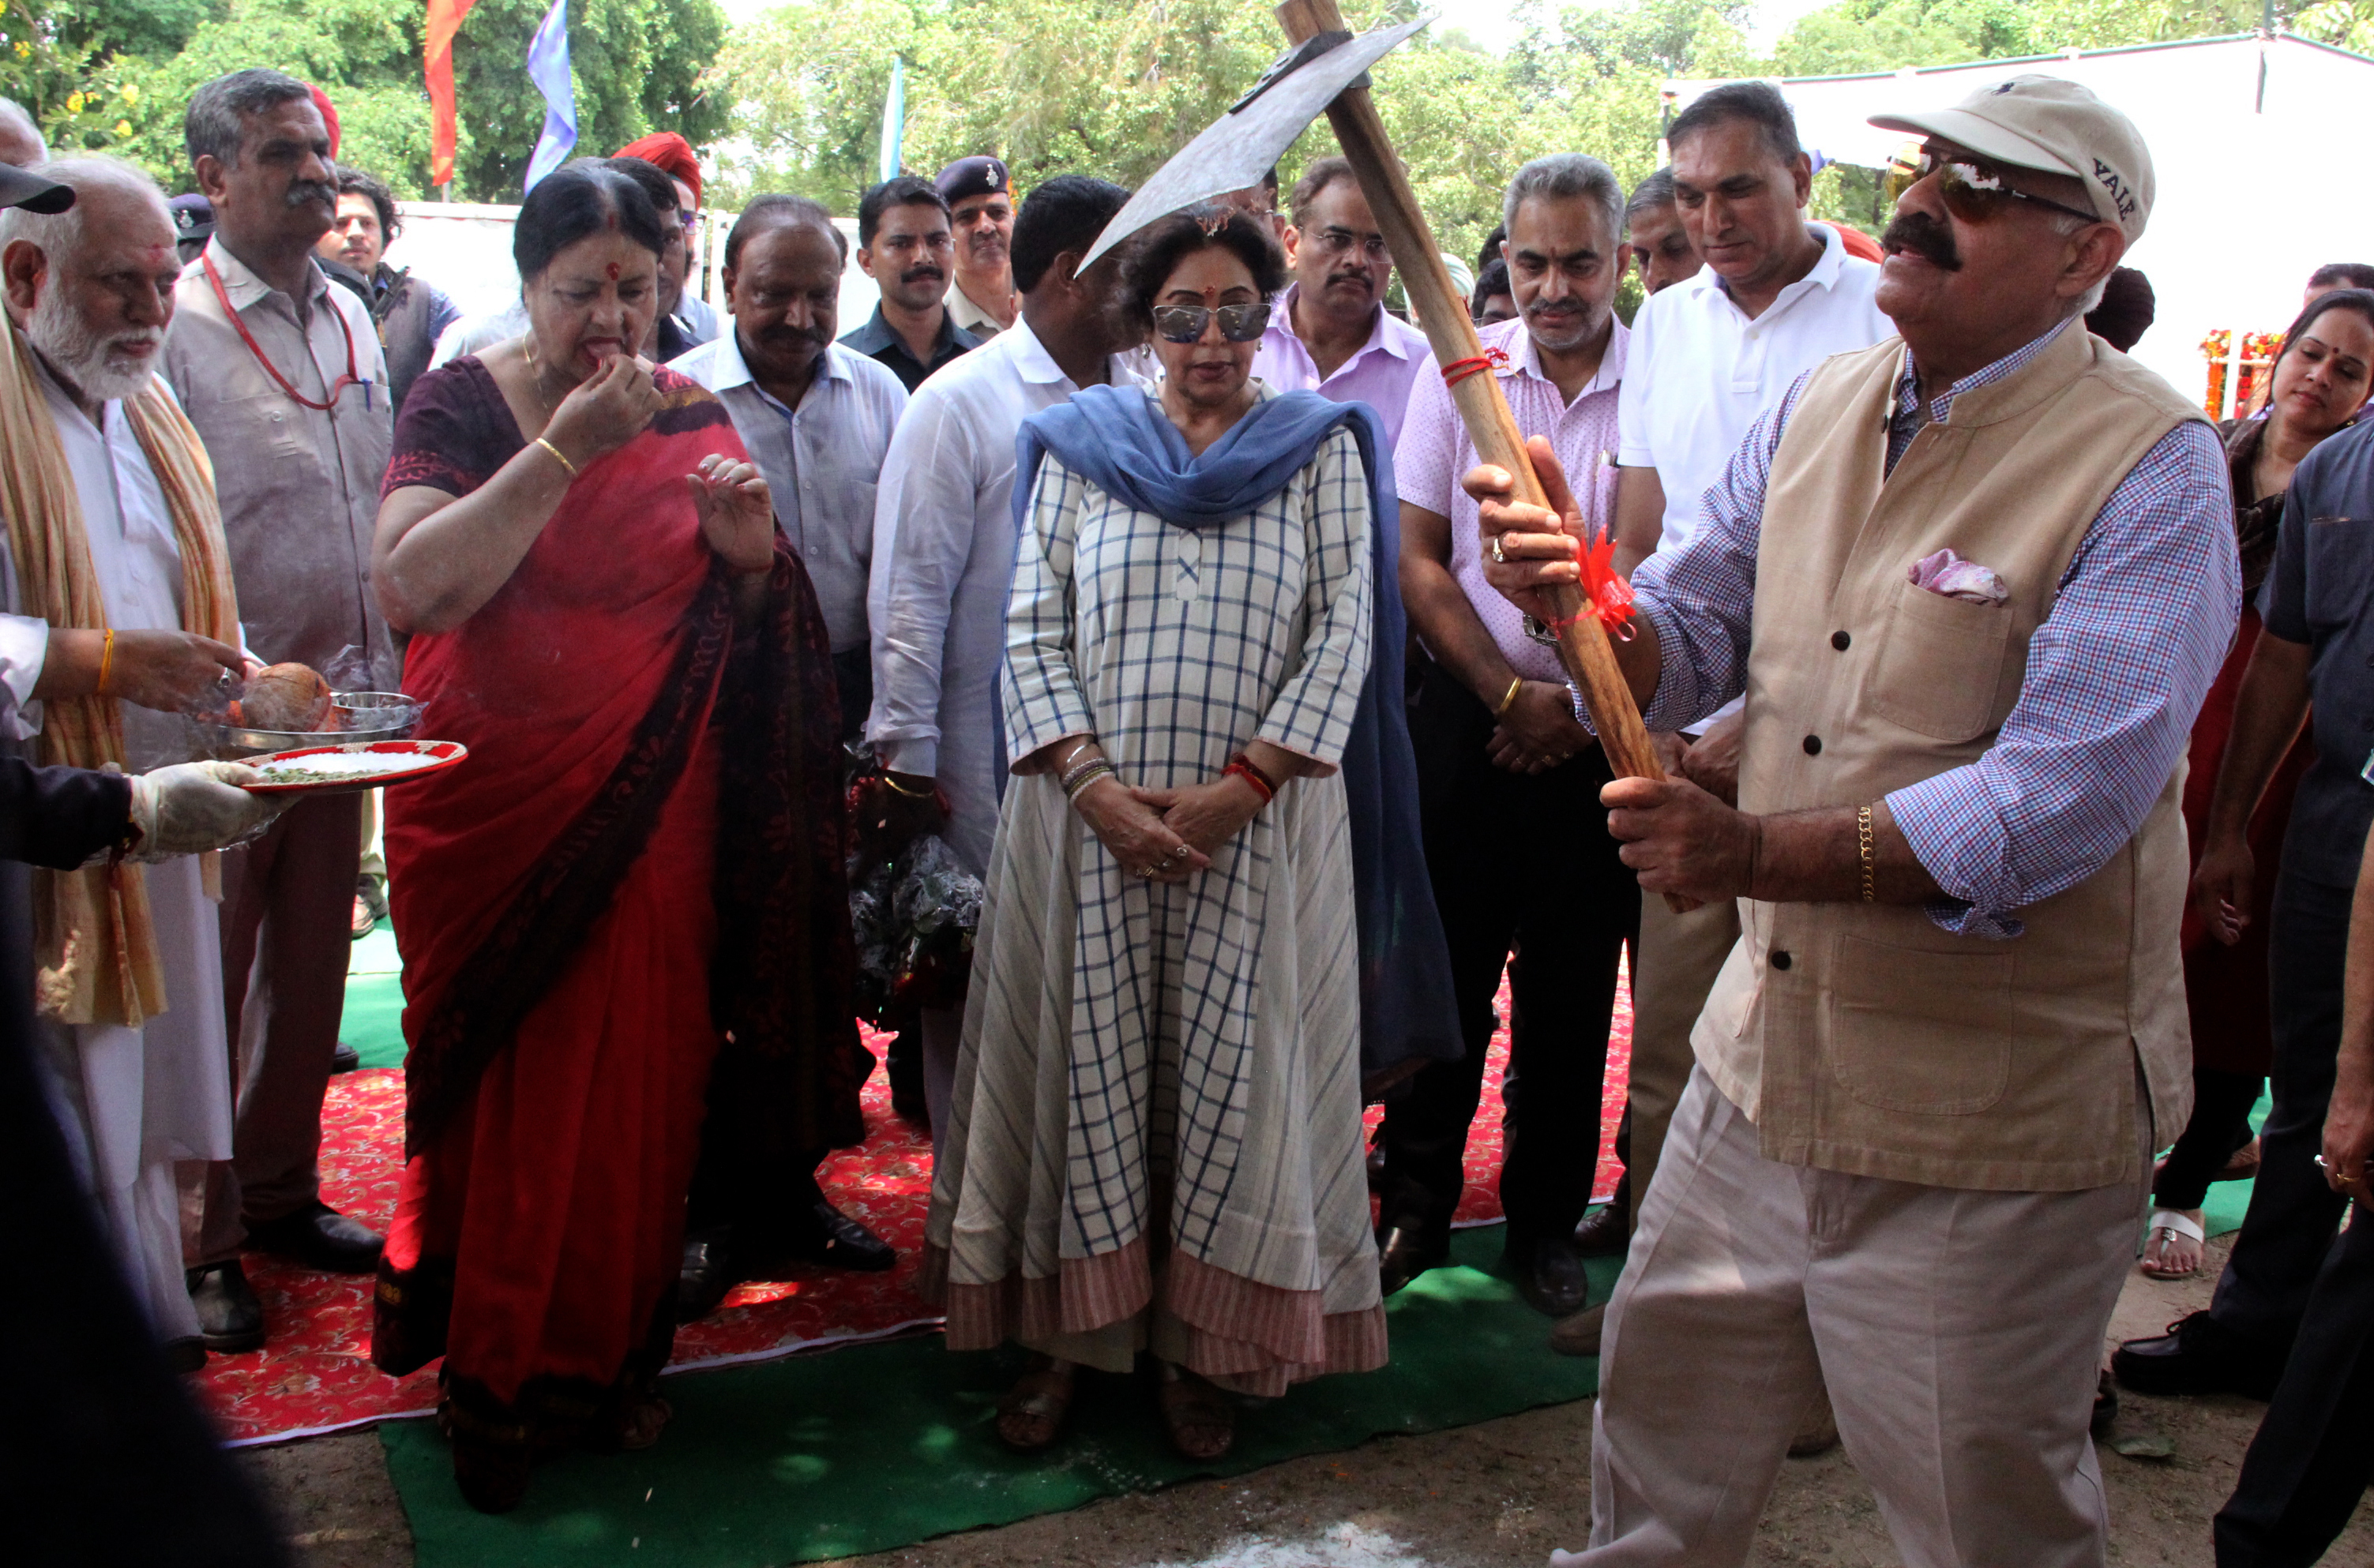 The Governor of Punjab and  Administrator, UT, Chandigarh Shri V.P. Singh Badnore alongwith Smt. Kirron Kher, Member of  Parliament Chandigarh,Laying Foundation Stone Revitalisation of proposed Urban Park behind Neelam Cinema Sector17 Chandigarh, on Sunday, June 25, 2017.